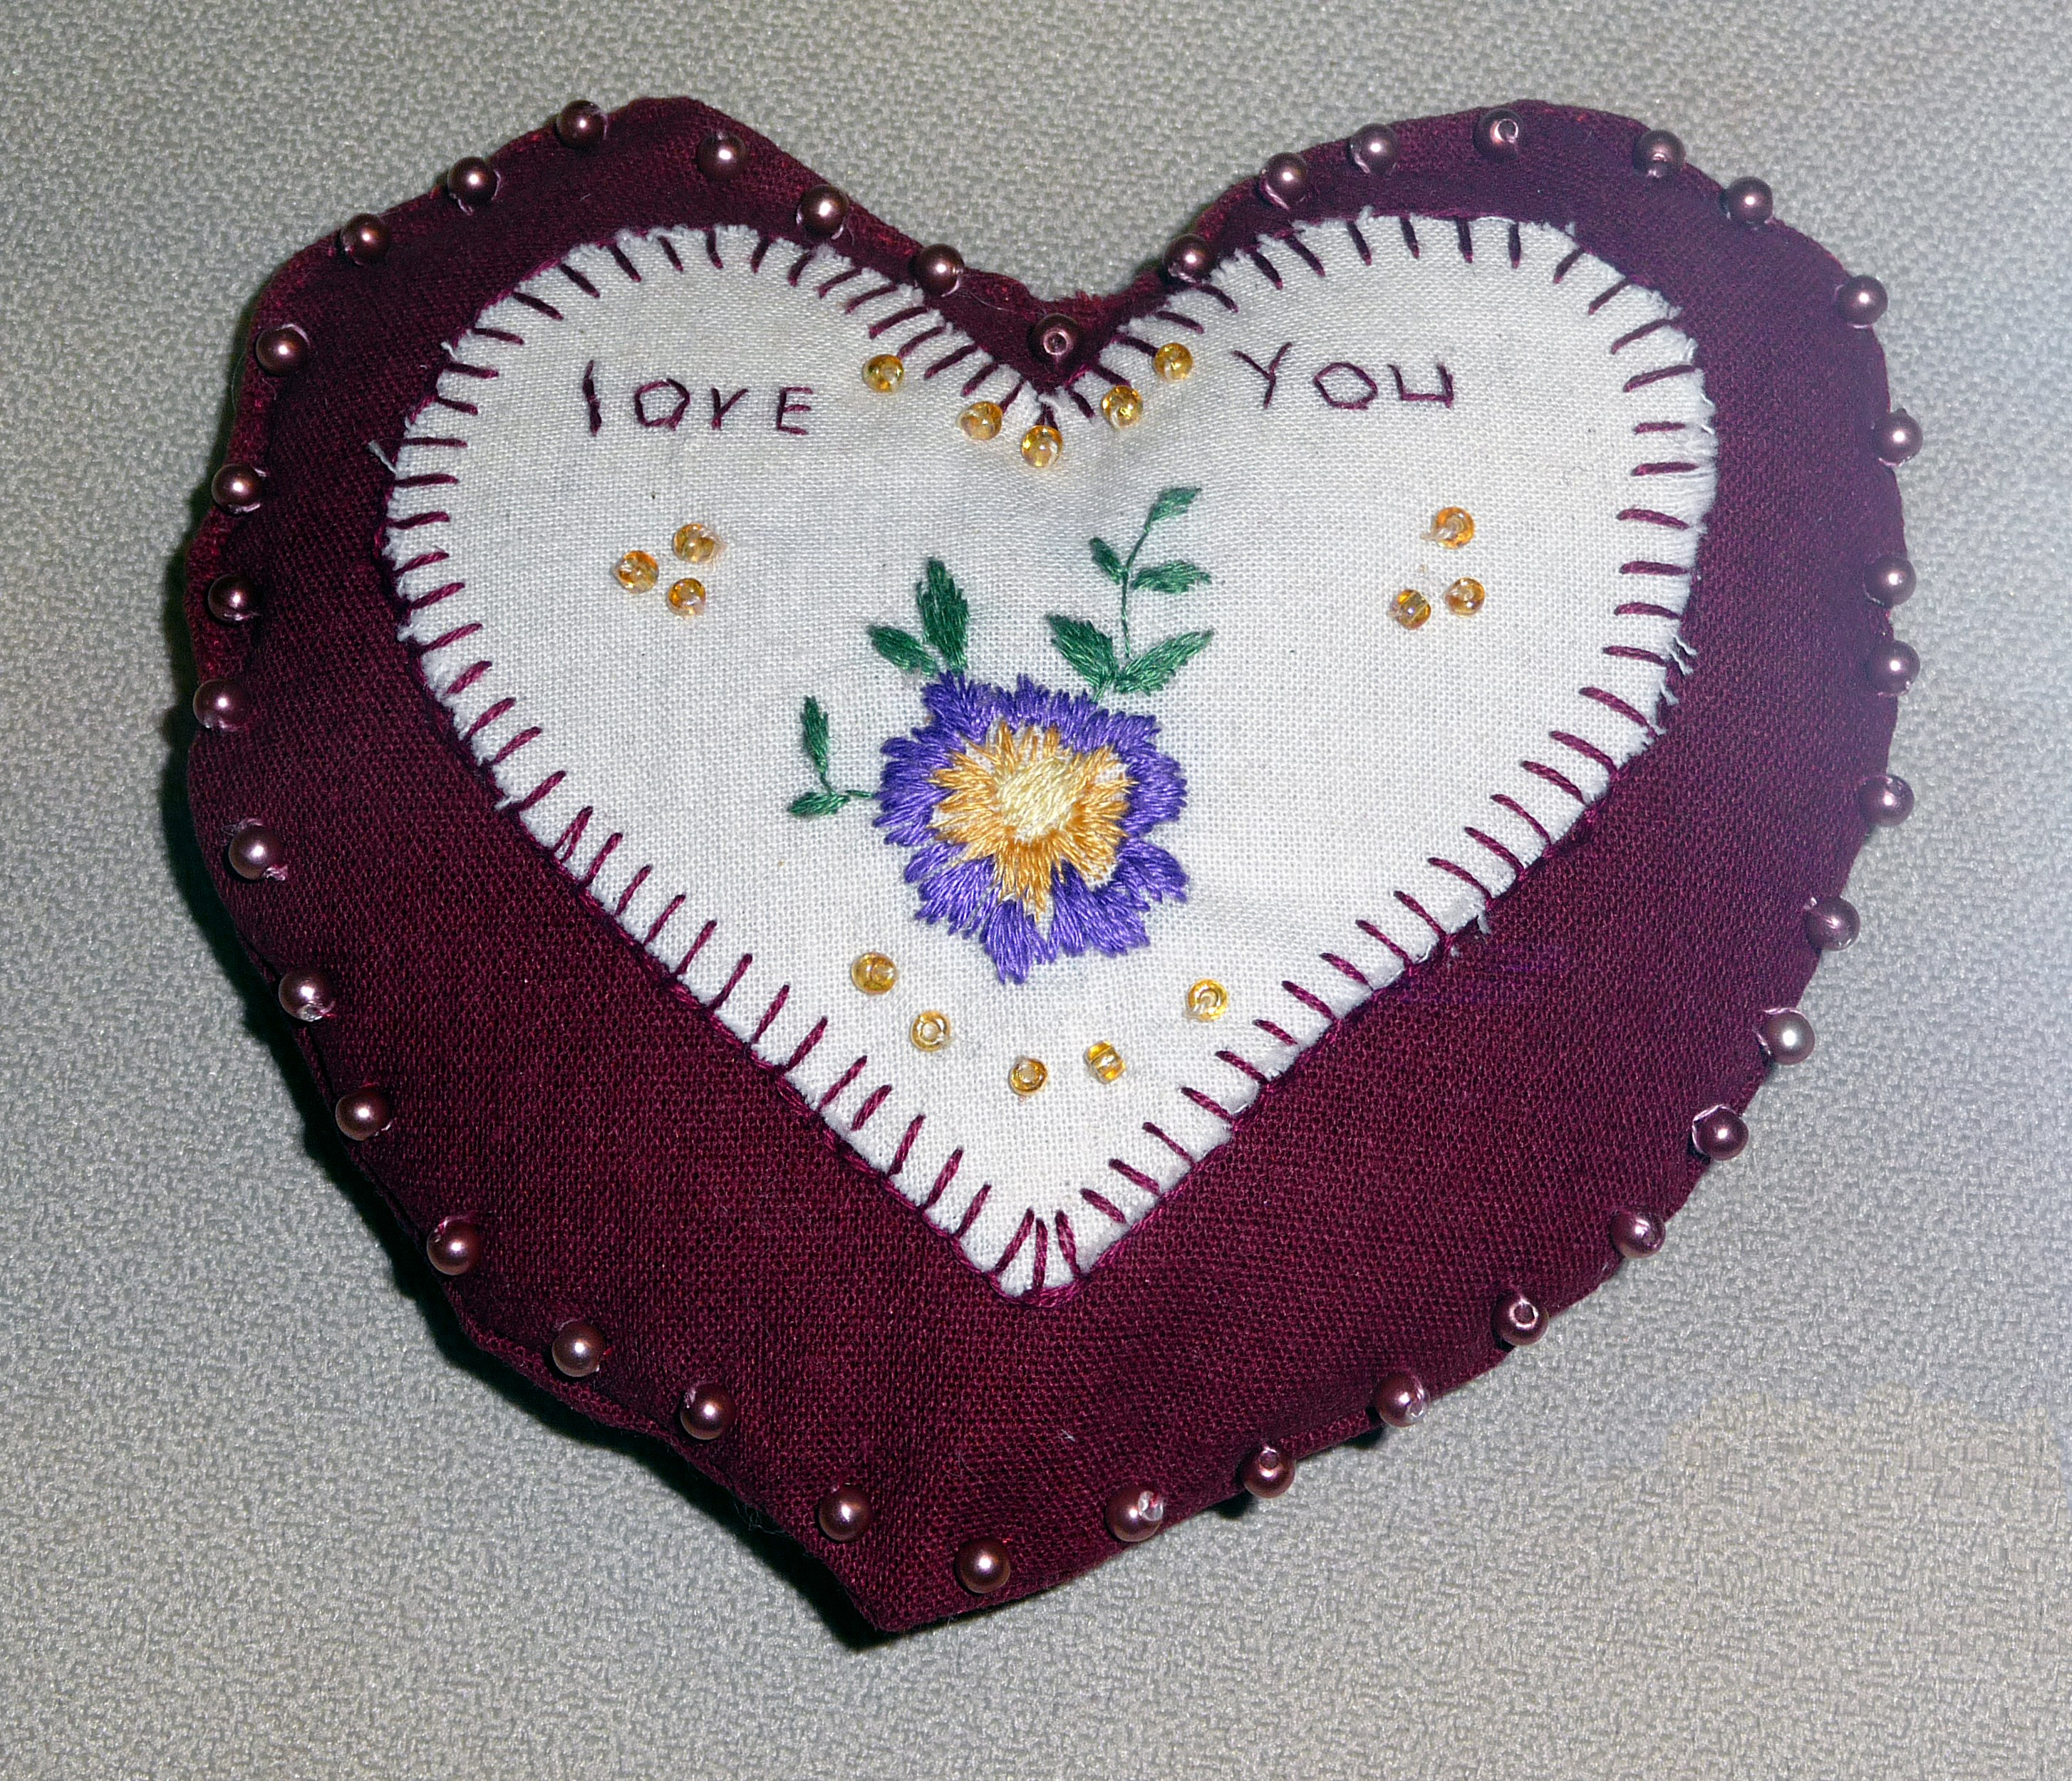 pincushion to commemorate World War 1  made by Frances McLaren